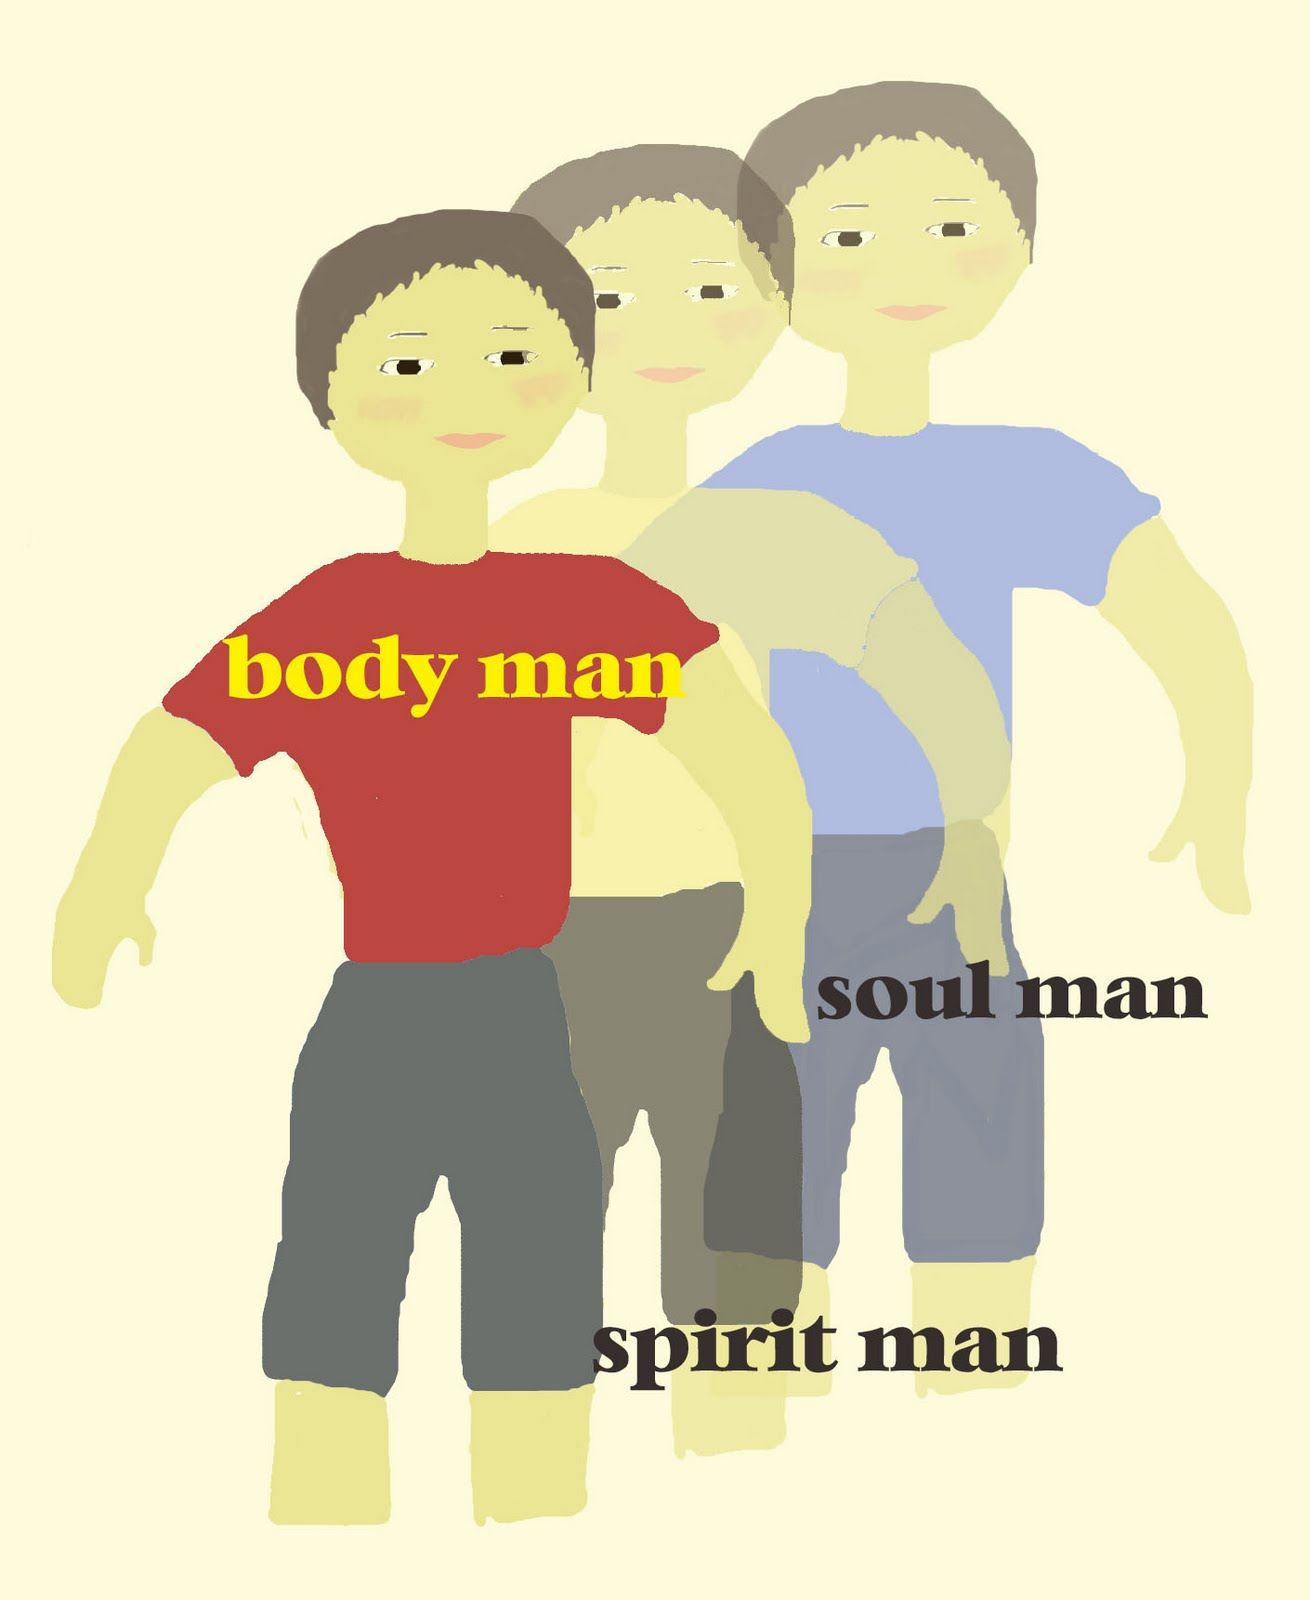 Images of Body Soul And Spirit Spirit Soul or Body Are